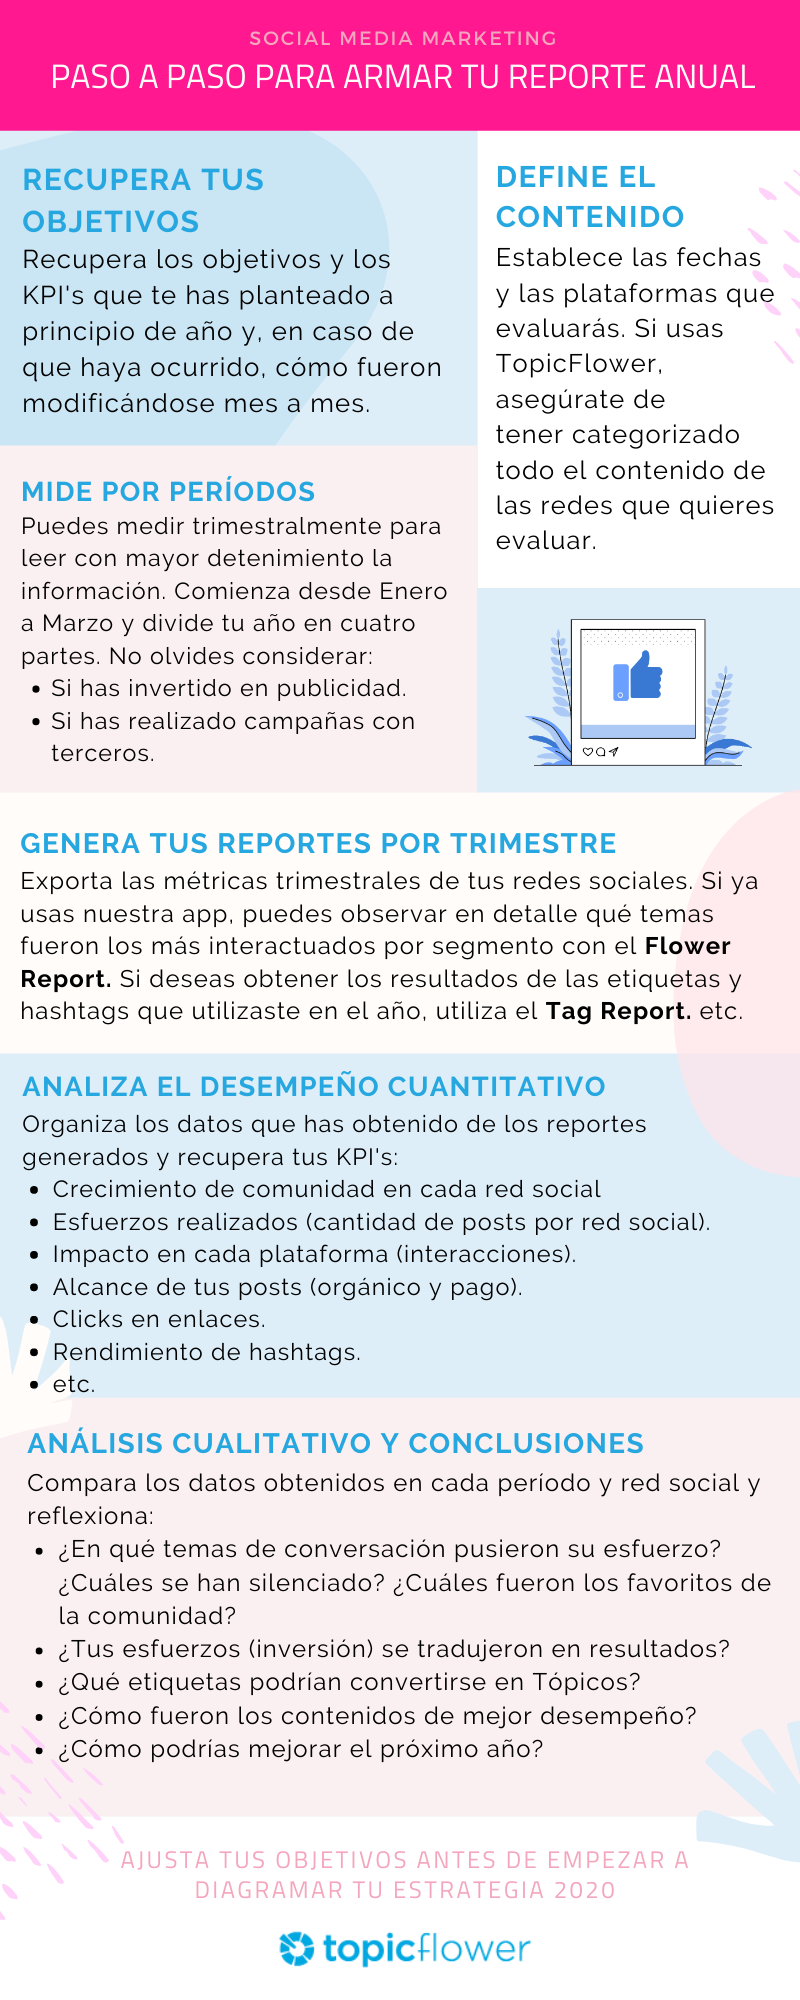 topicflower-analisis-reporte-anual